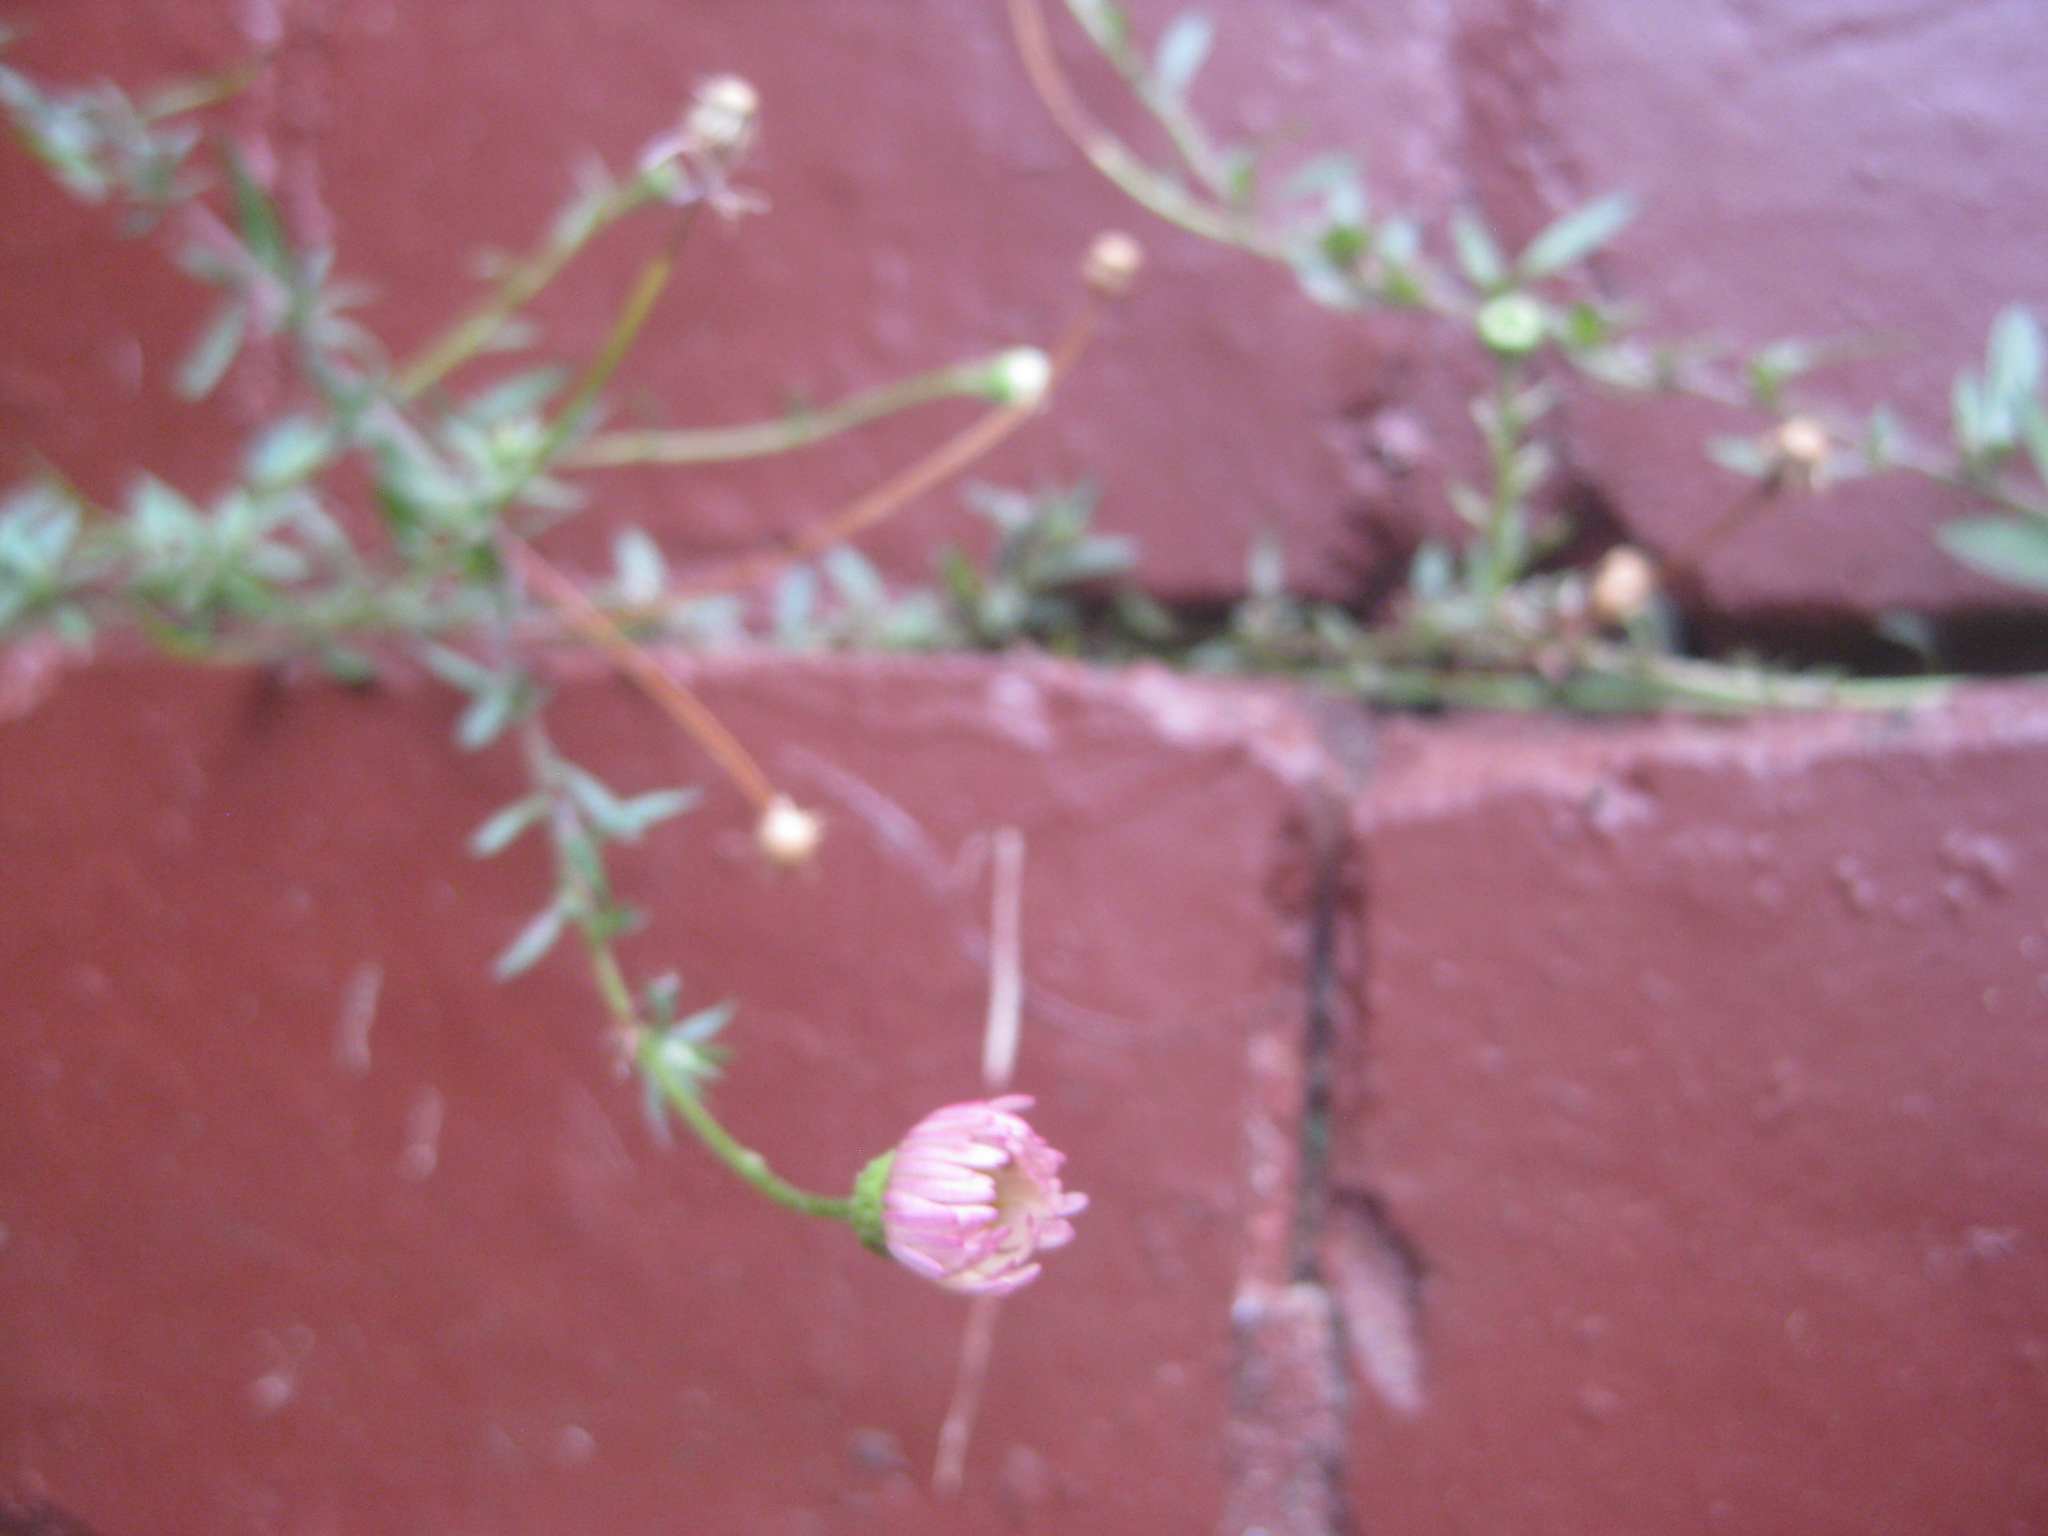 pink tiny daisy growing in a brick wall where flowers shouldn't be